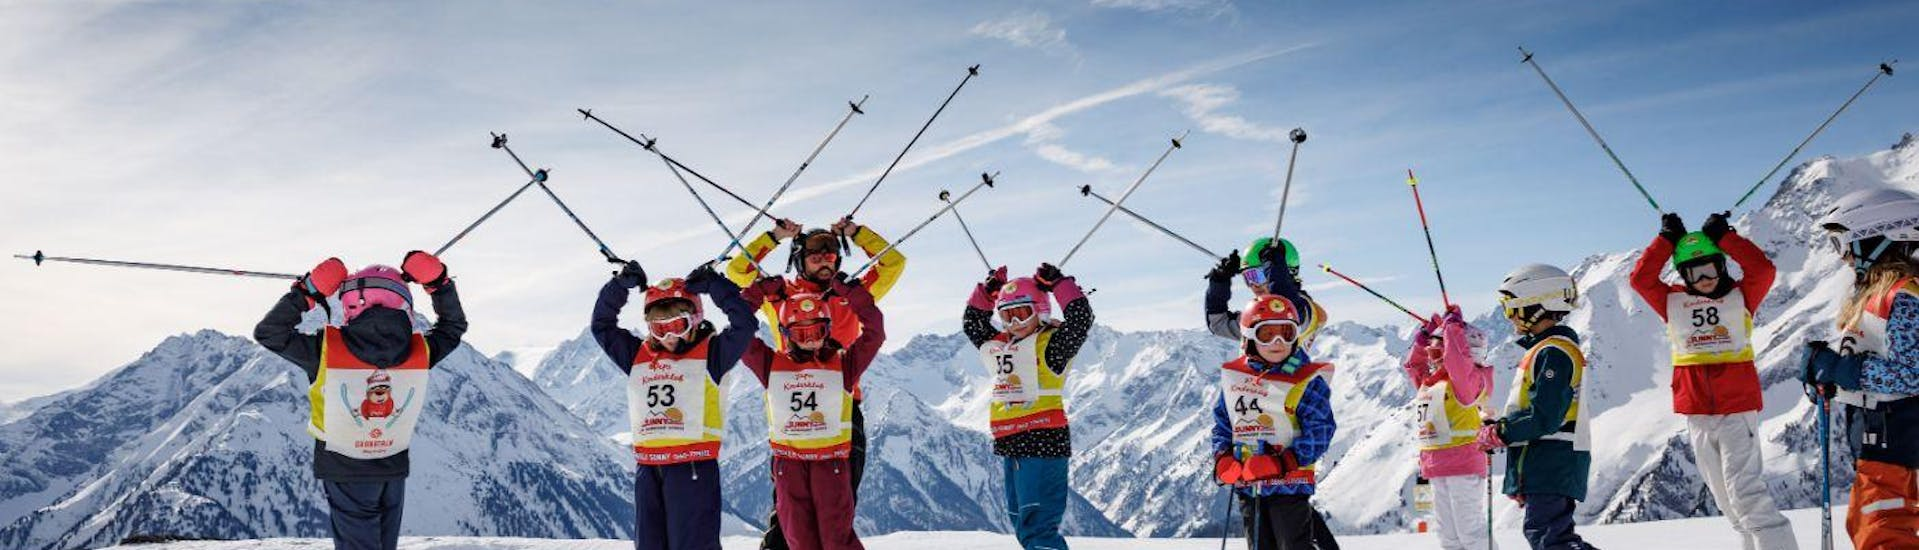 Kids Ski Lessons (4-14 y.) for Advanced Skiers with Skischule Sunny Finkenberg - Hero image